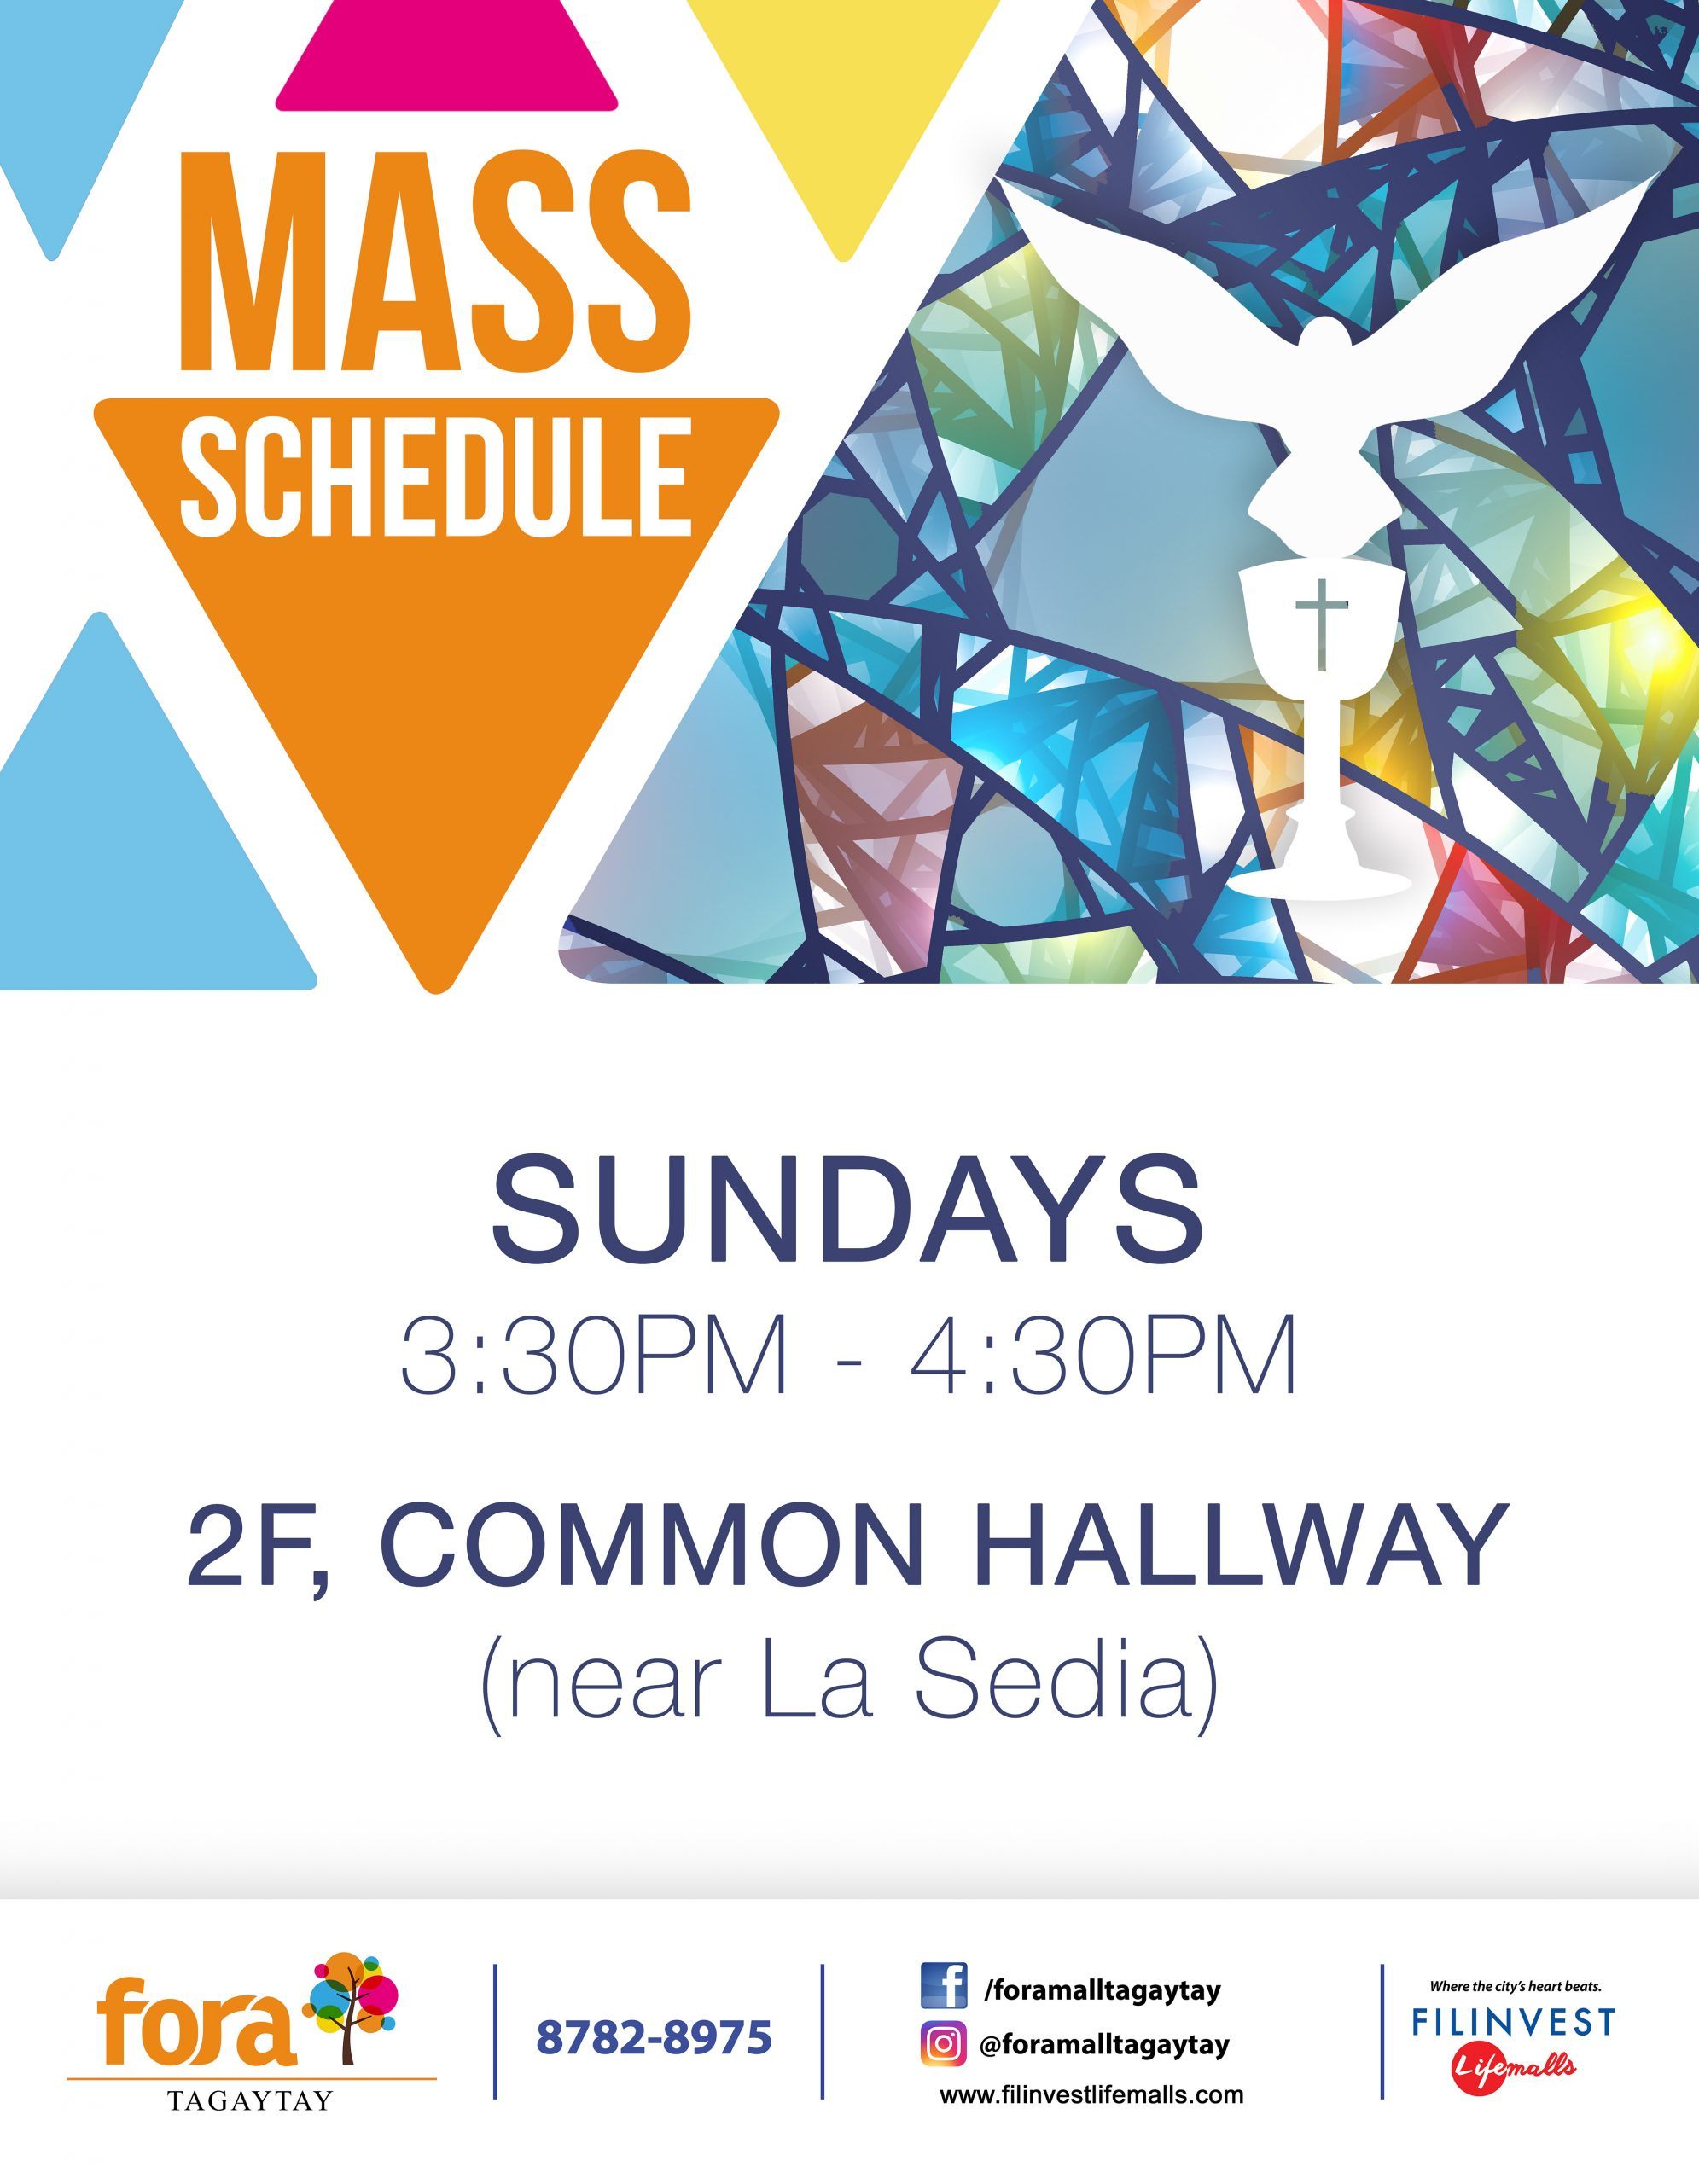 CELEBRATE THE HOLY MASS AT FORA